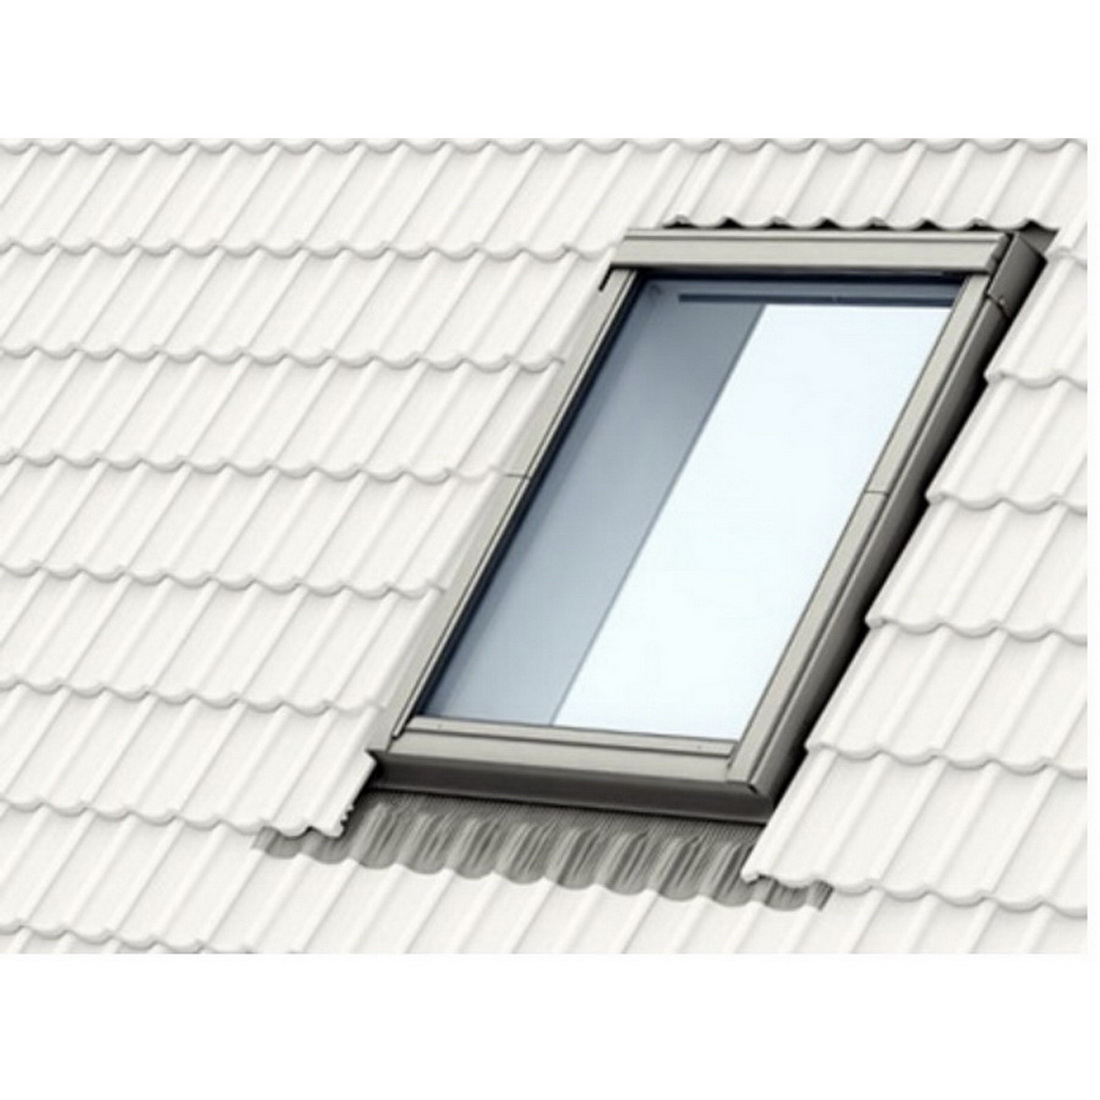 Velux EDW Flashing Kit For Metal/Tile Roofing Material EDW C04 0000A